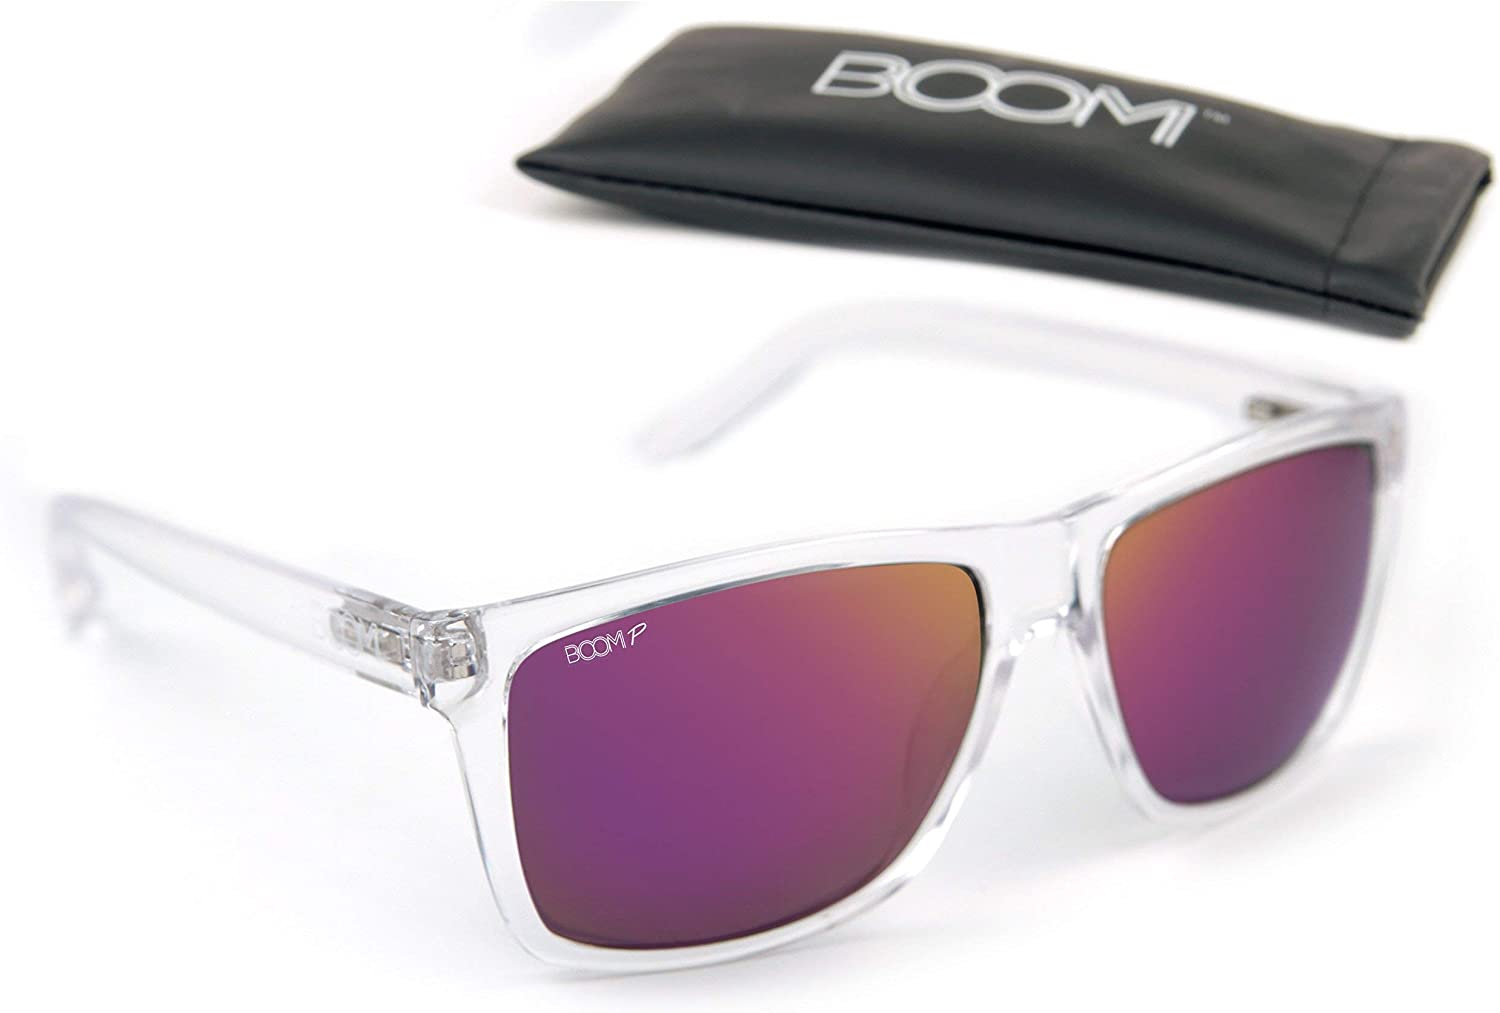 BOOM Surge Polarized Sunglasses by Dimensional Optics